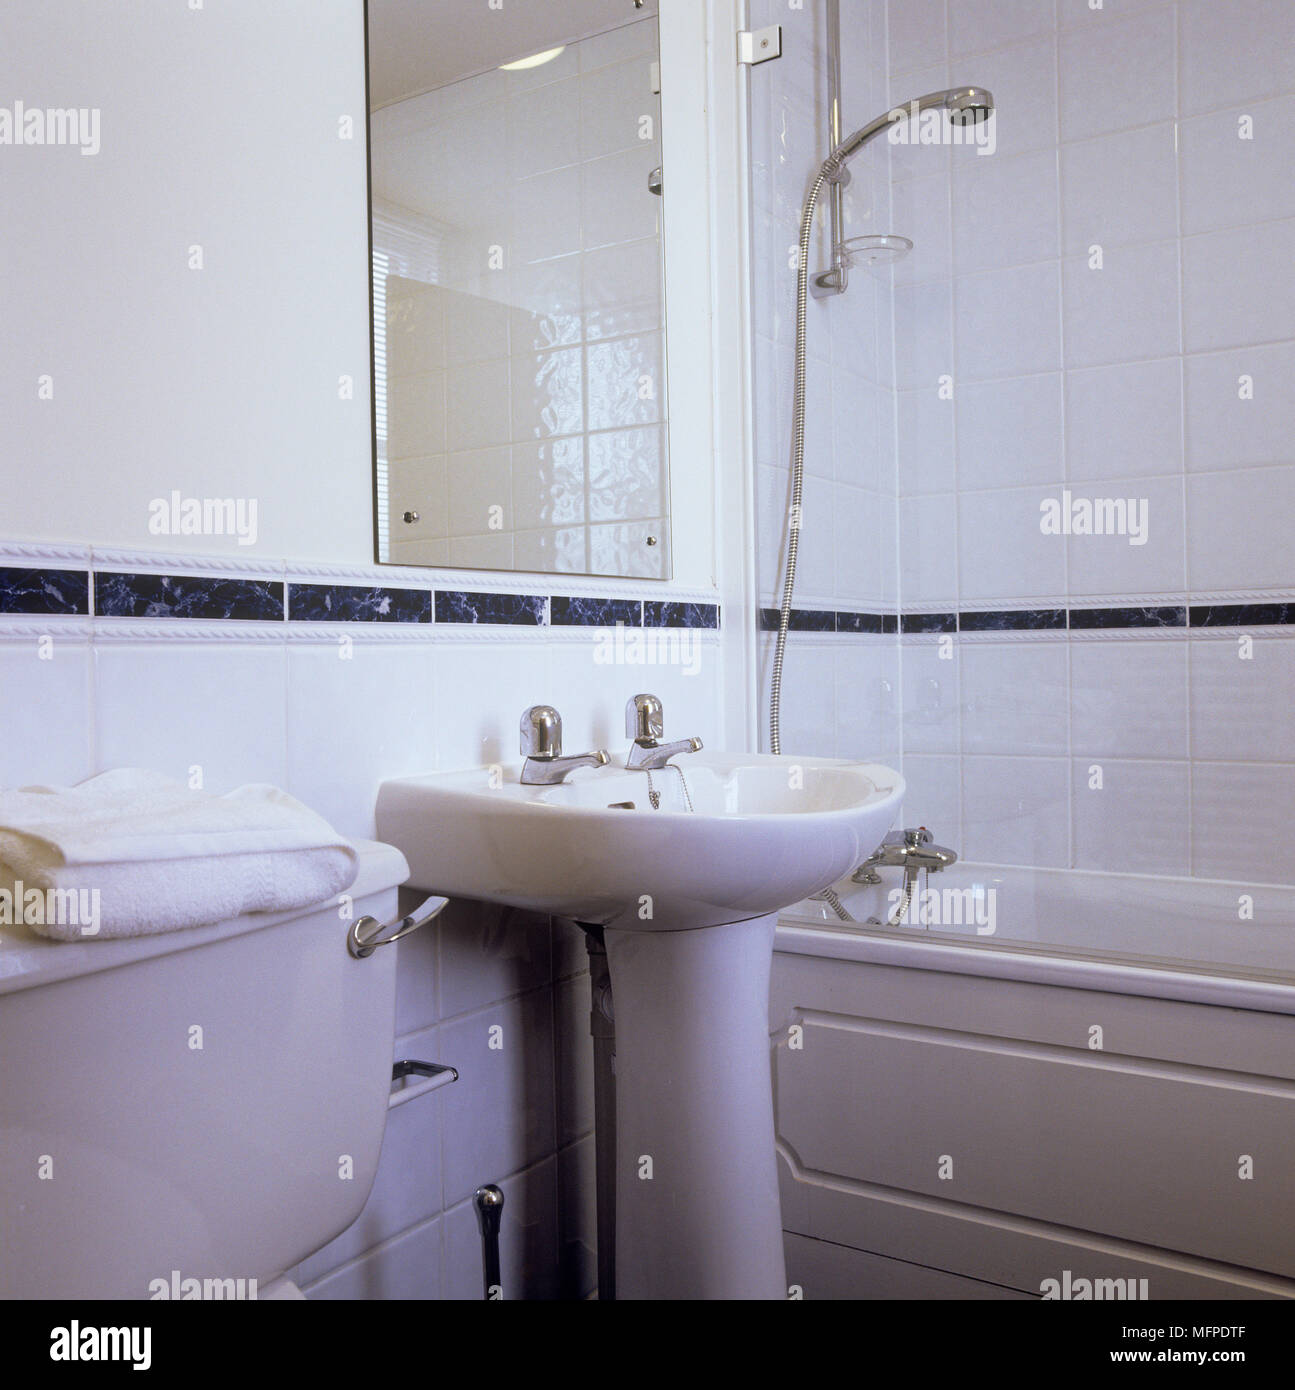 Shower Over Bath Stock Photos & Shower Over Bath Stock Images - Alamy